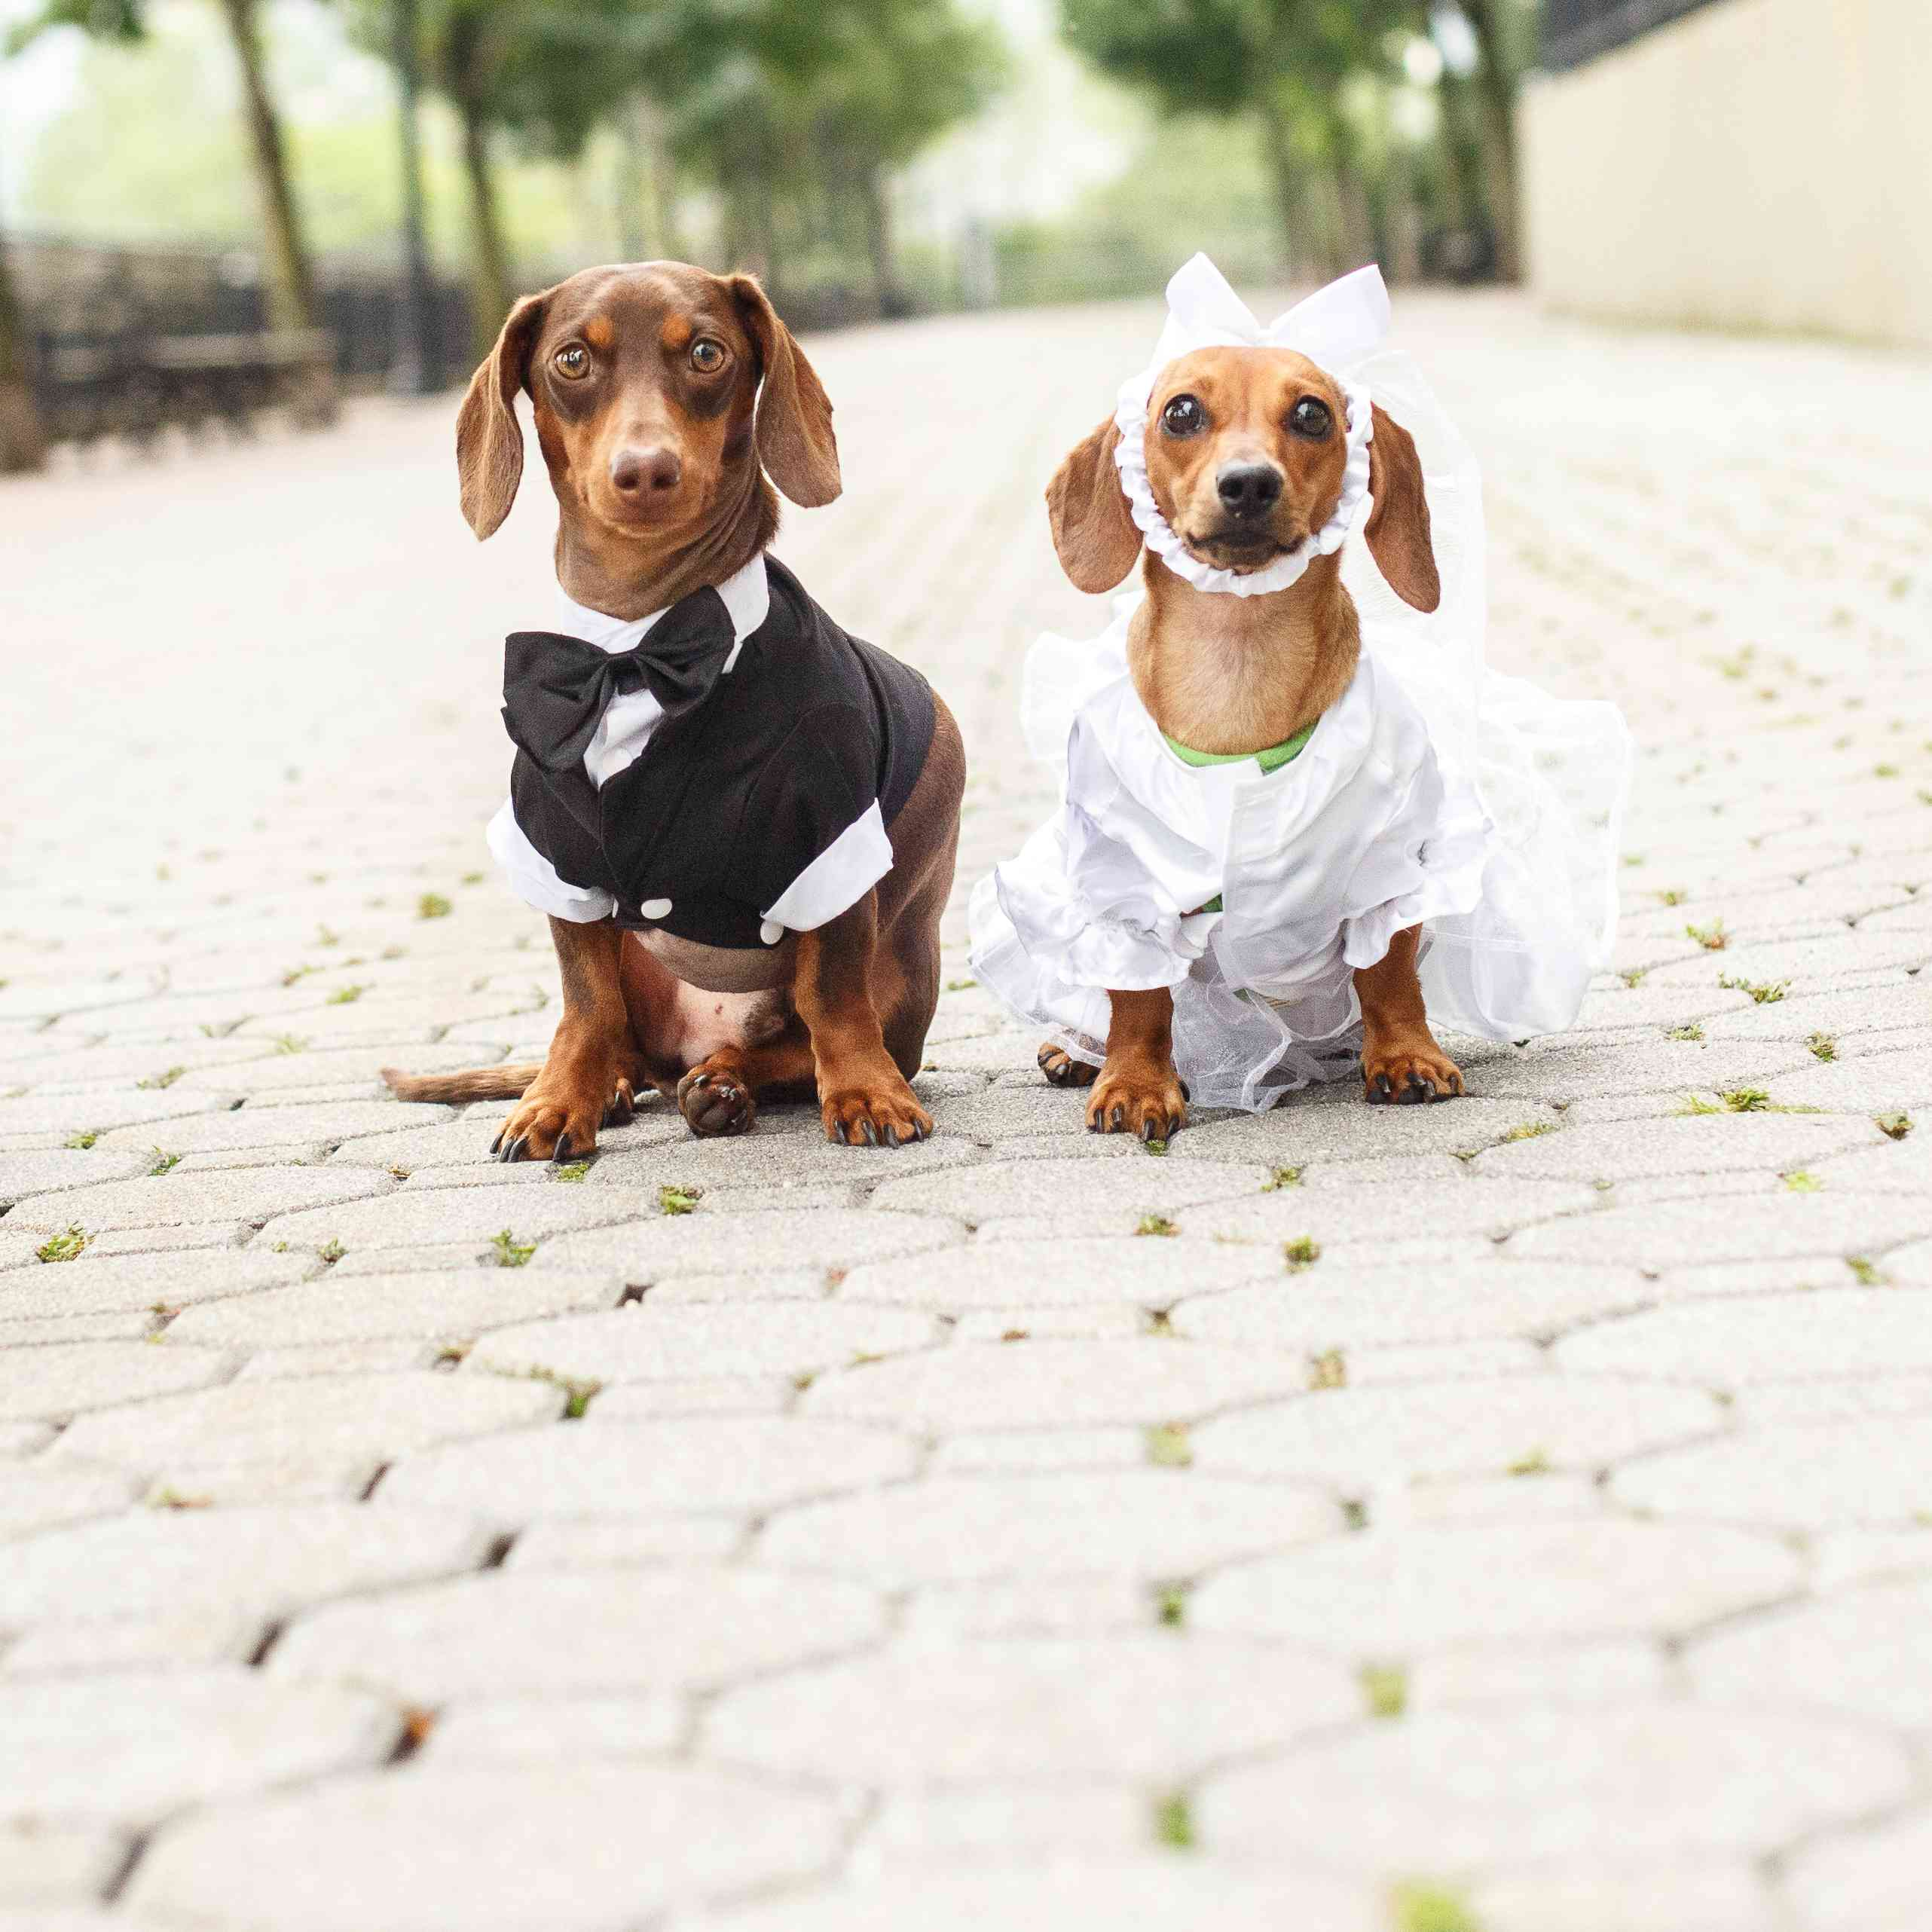 8 Dog Weddings to Give You All the Warm Fuzzies